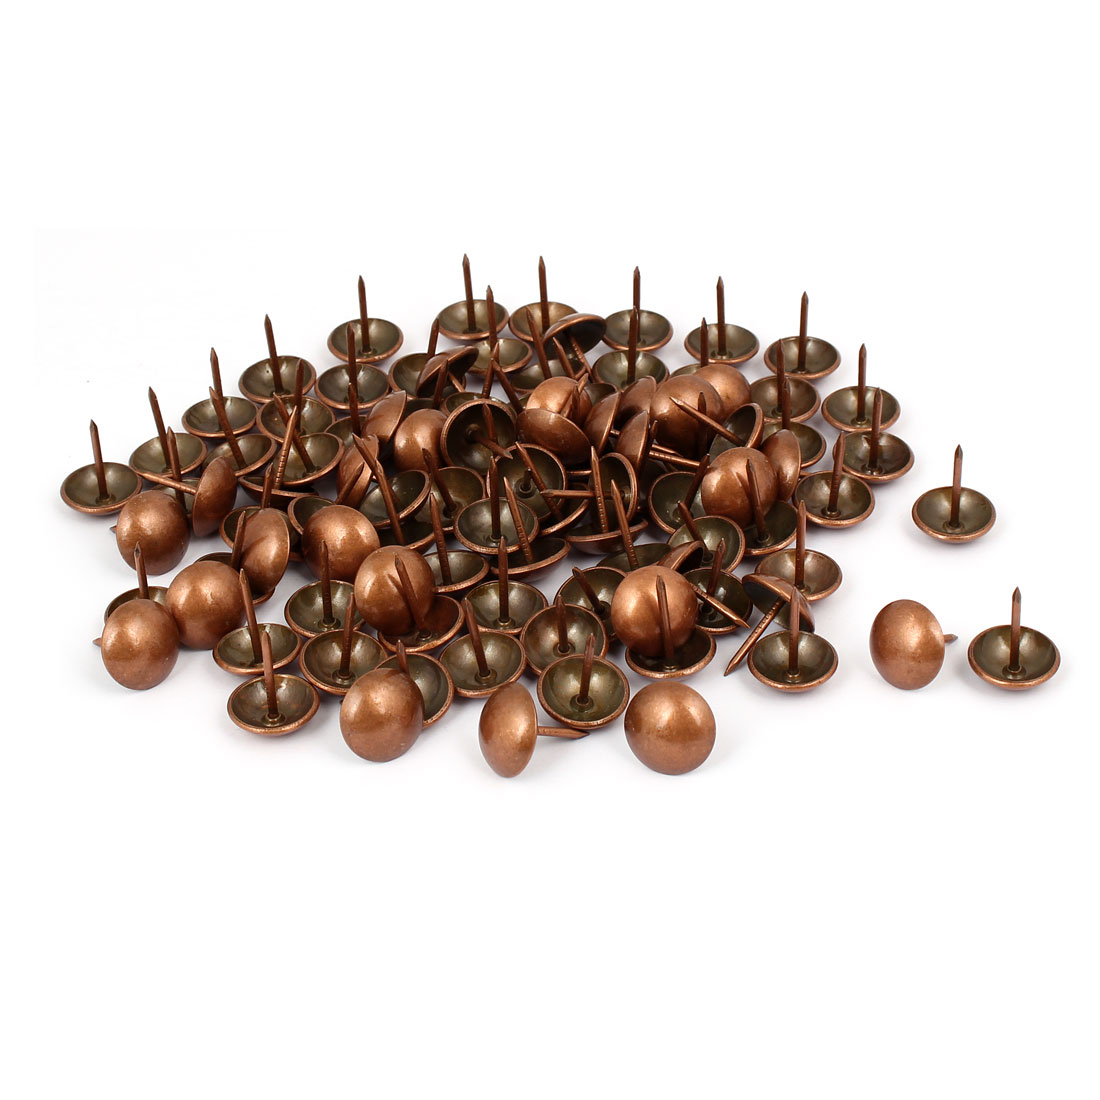 Metal Upholstery Tack Push Nail Copper Tone 16mm Dia 100pcs for Furniture Decor